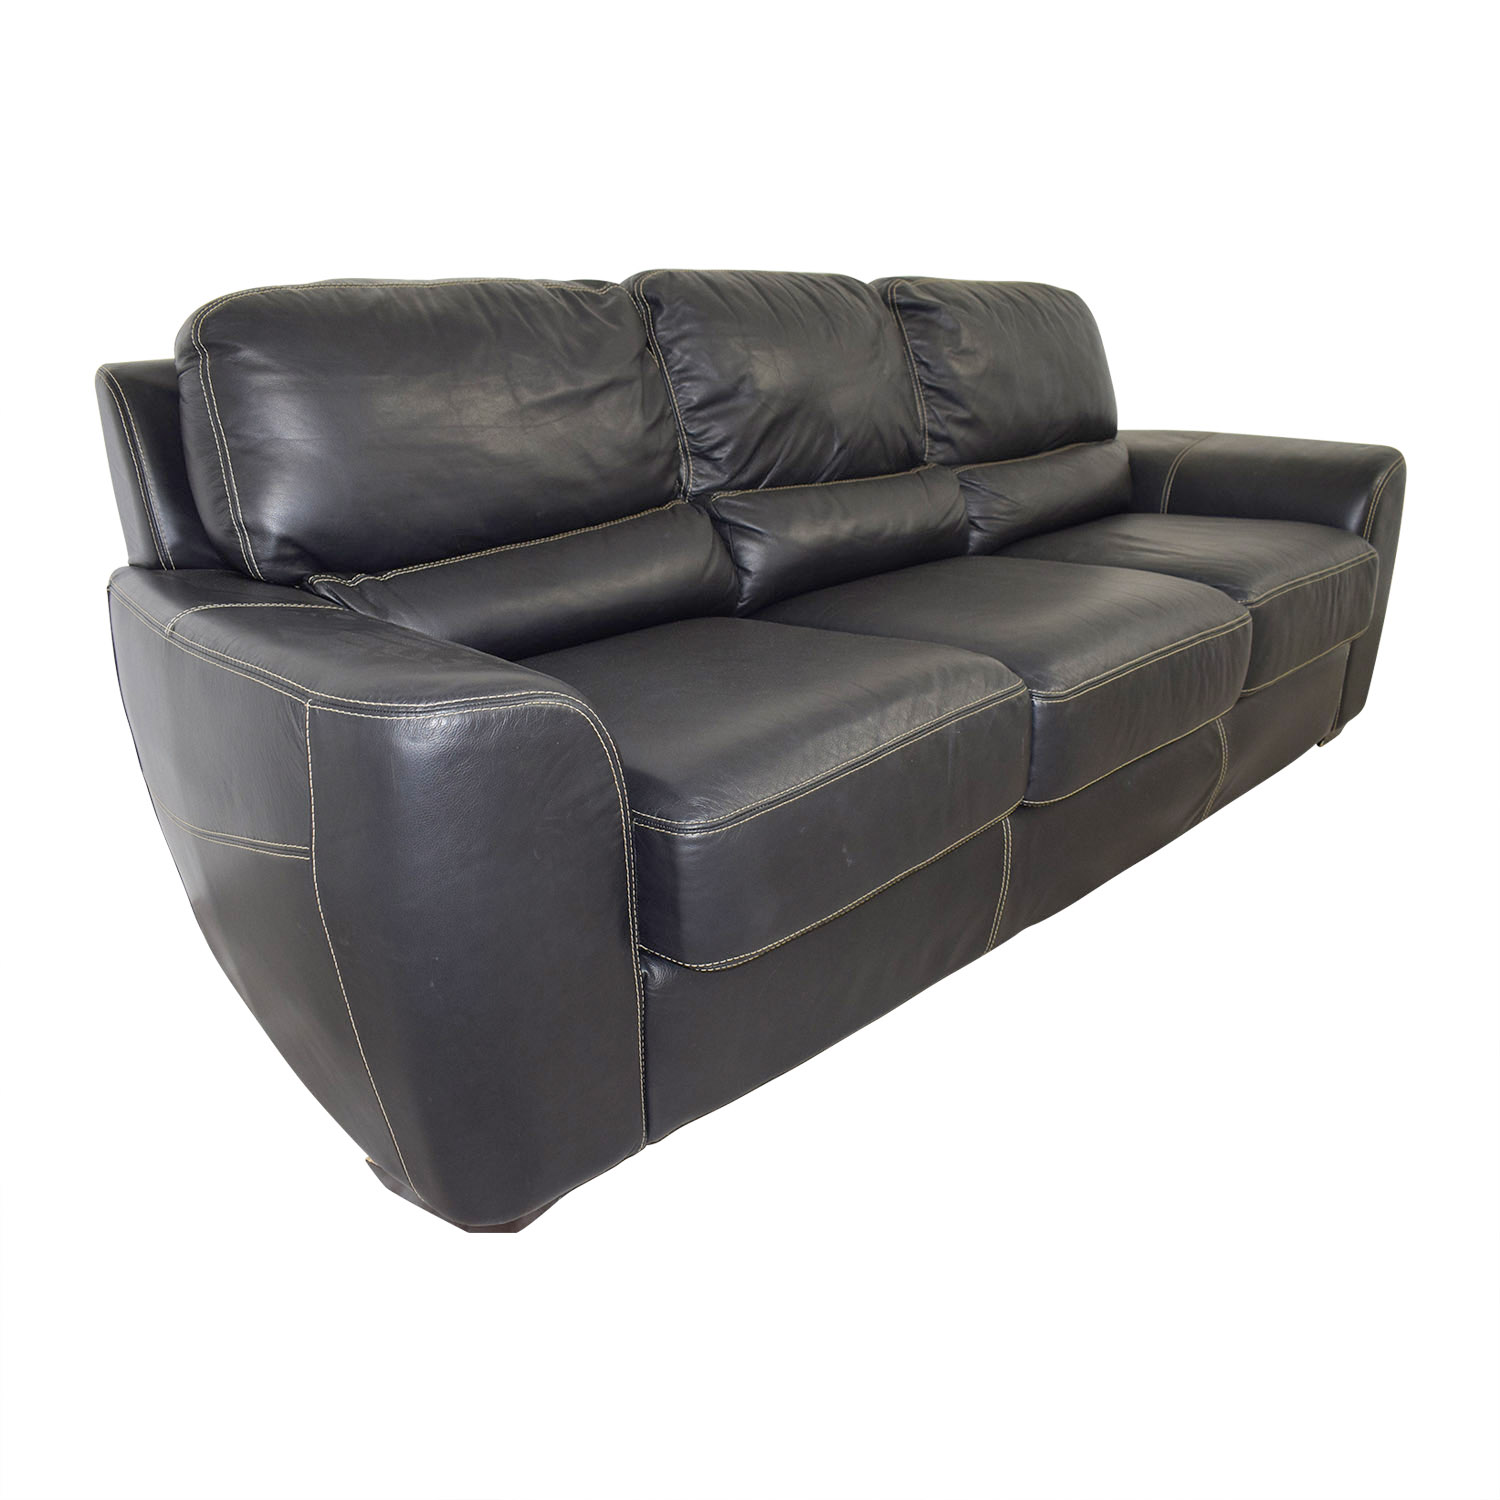 Stupendous 82 Off Z Gallerie Z Gallerie Three Cushion Black Leather Couch Sofas Ibusinesslaw Wood Chair Design Ideas Ibusinesslaworg